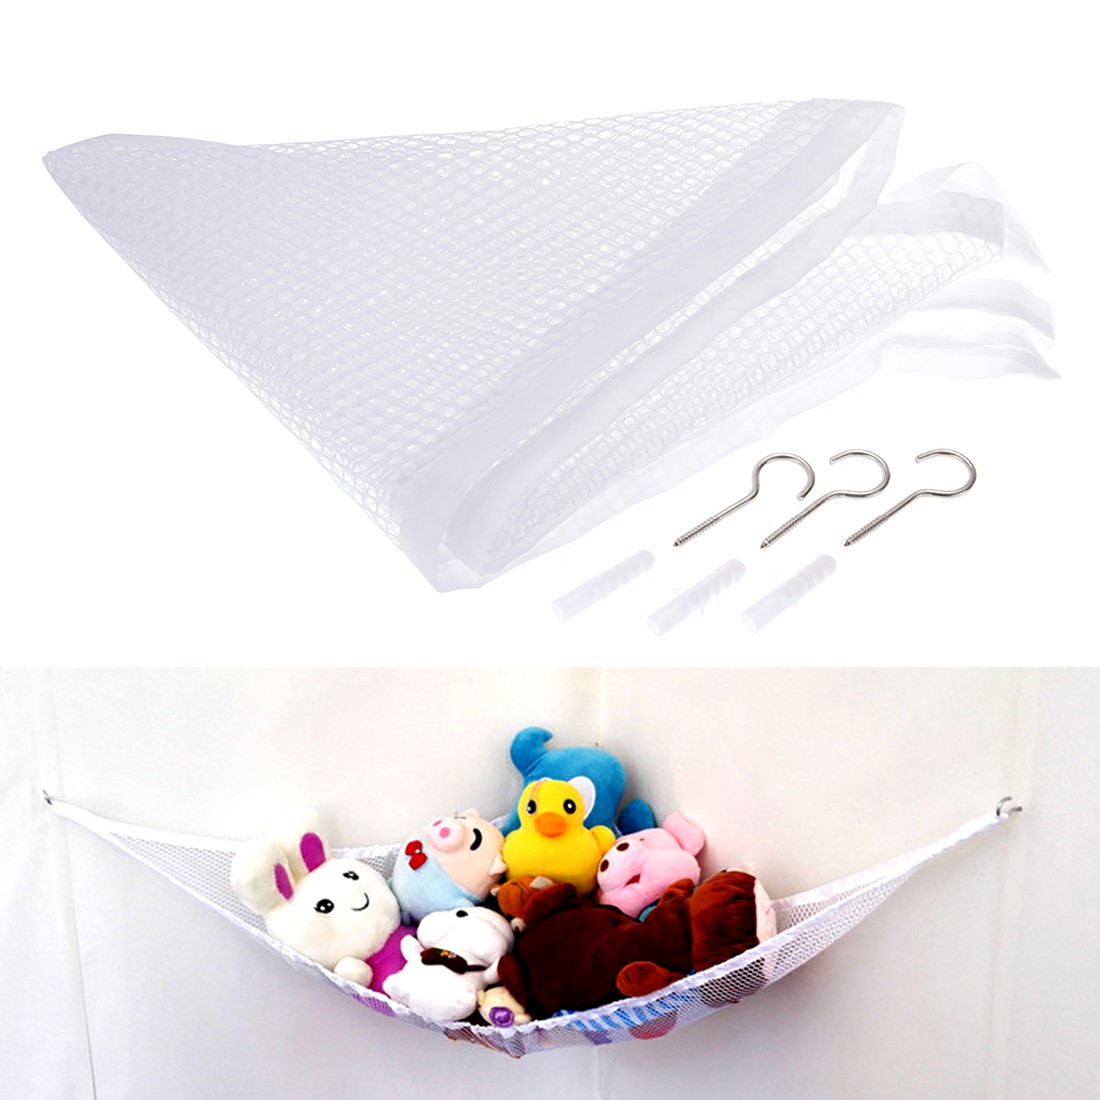 Large and Soft Hammock Mesh Baby Room Toy Tidy Net